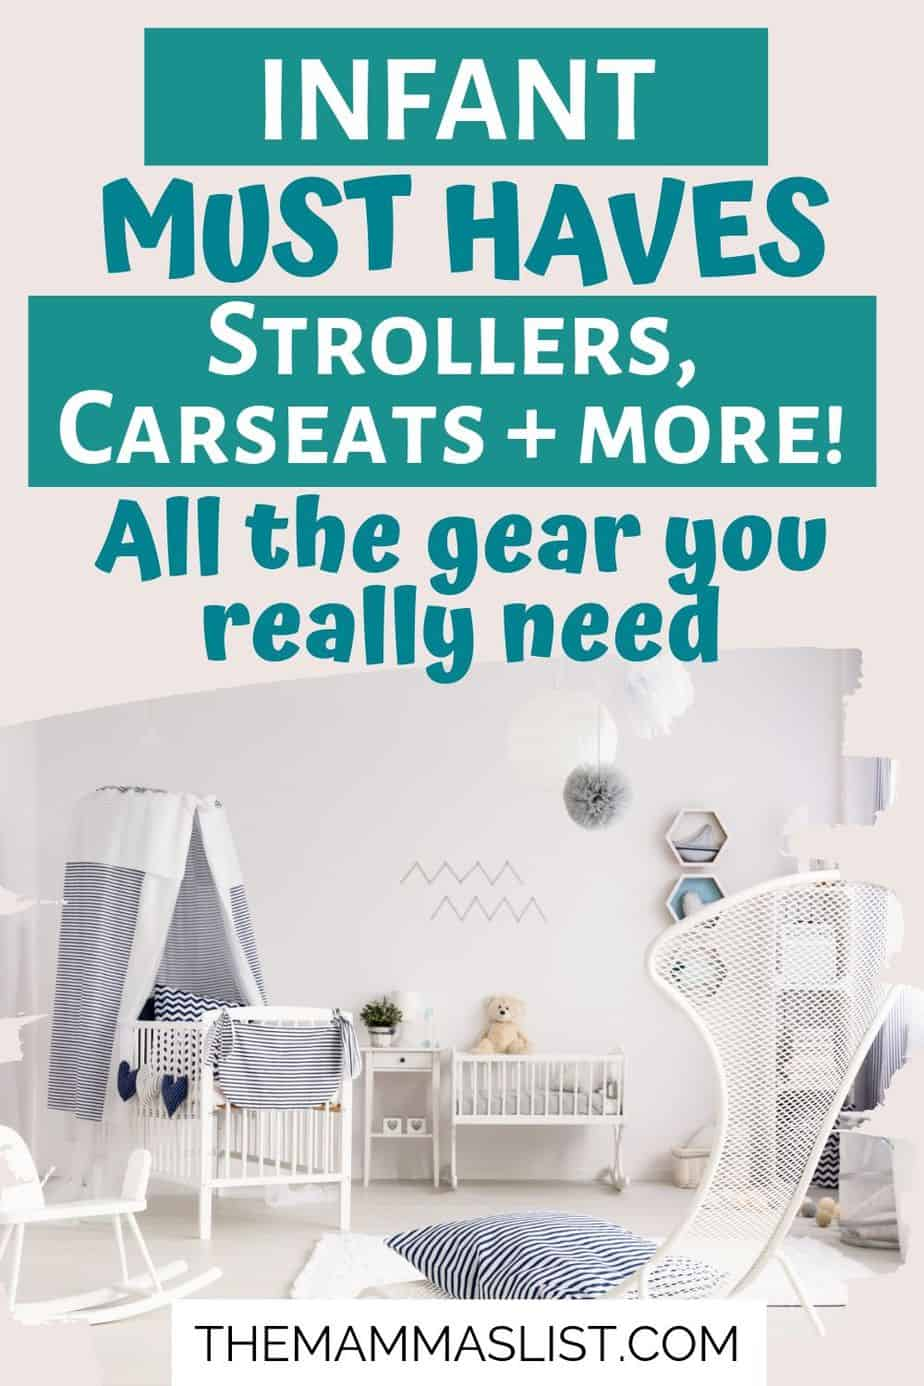 Everything you ever needed to get moving. All your baby registry needs for baby items on the go. Strollers, Car seats, baby carriers, diaper bags and more. Find out the best products for your baby registry and what you really need!